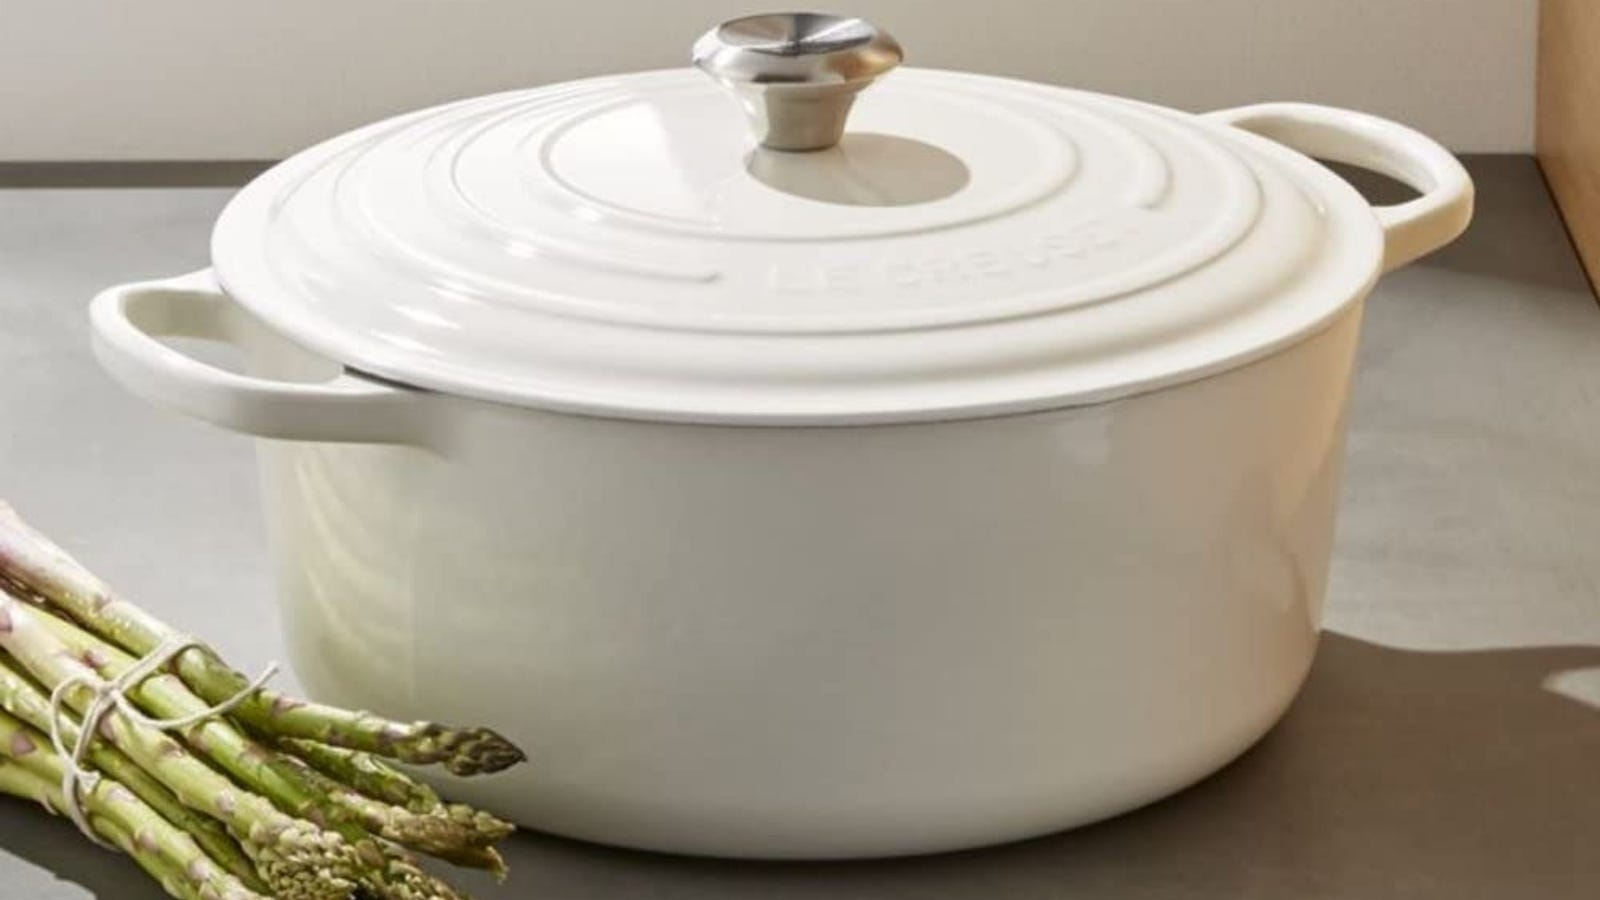 A white Le Creuset 5.5 quart Dutch oven presented with a bunch of asparagus next to it.